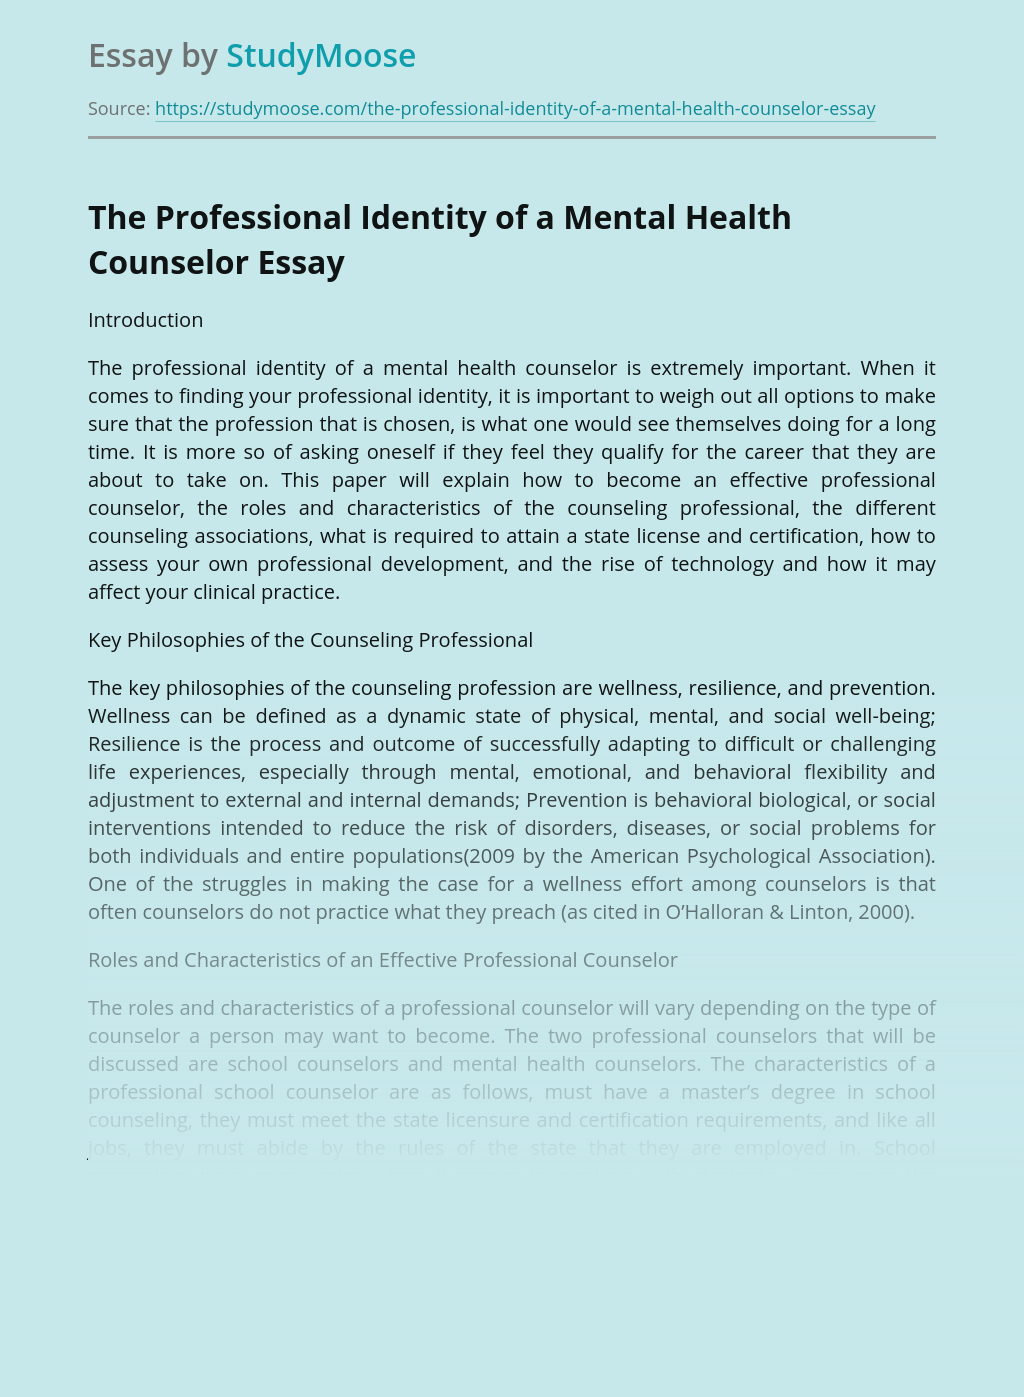 The Professional Identity of a Mental Health Counselor